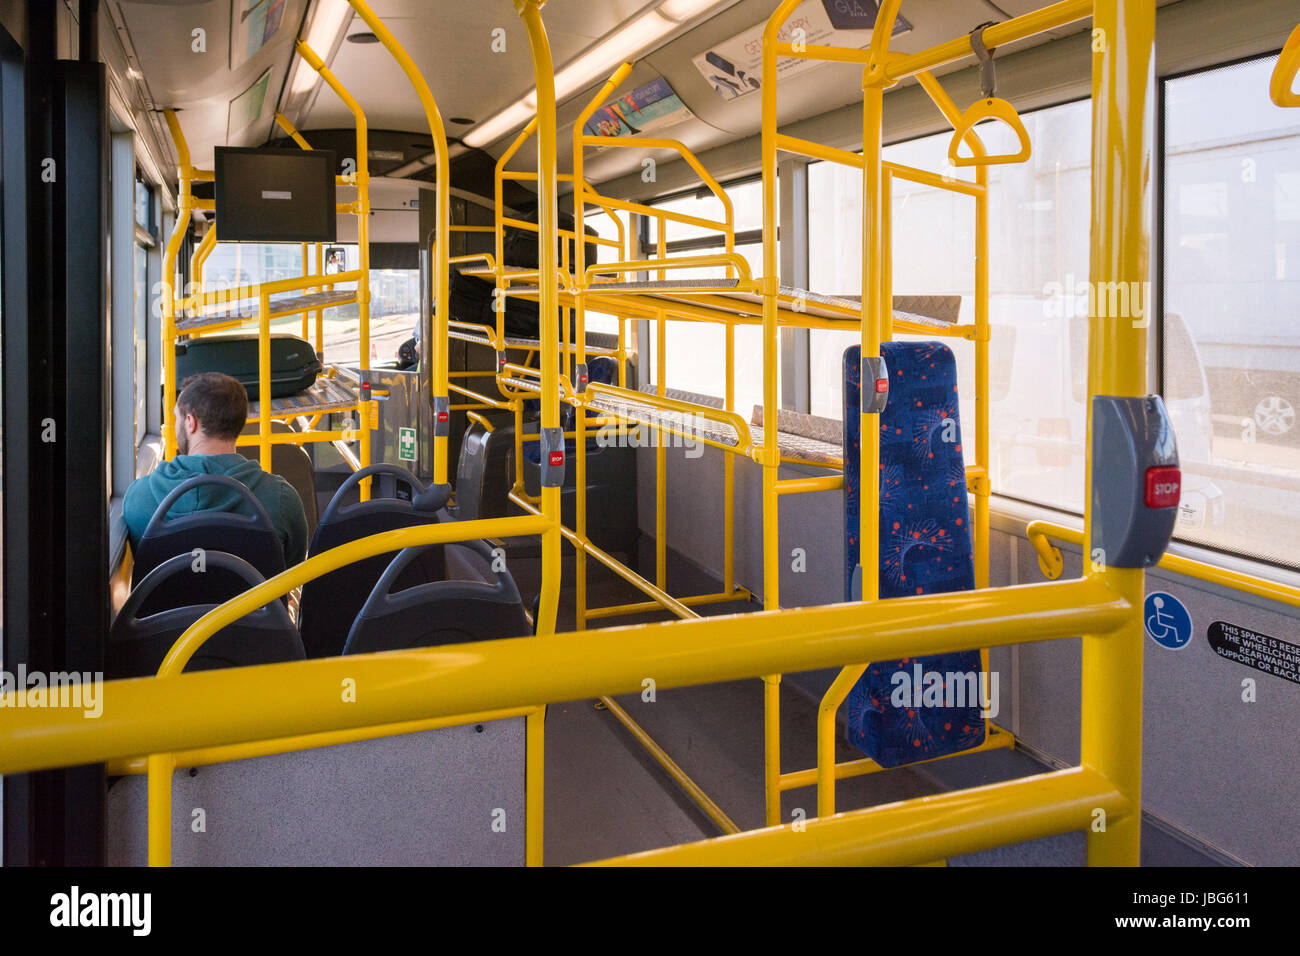 Shuttle bus from long stay car park at Glasgow airport, Glasgow, Scotland, UK - Stock Image